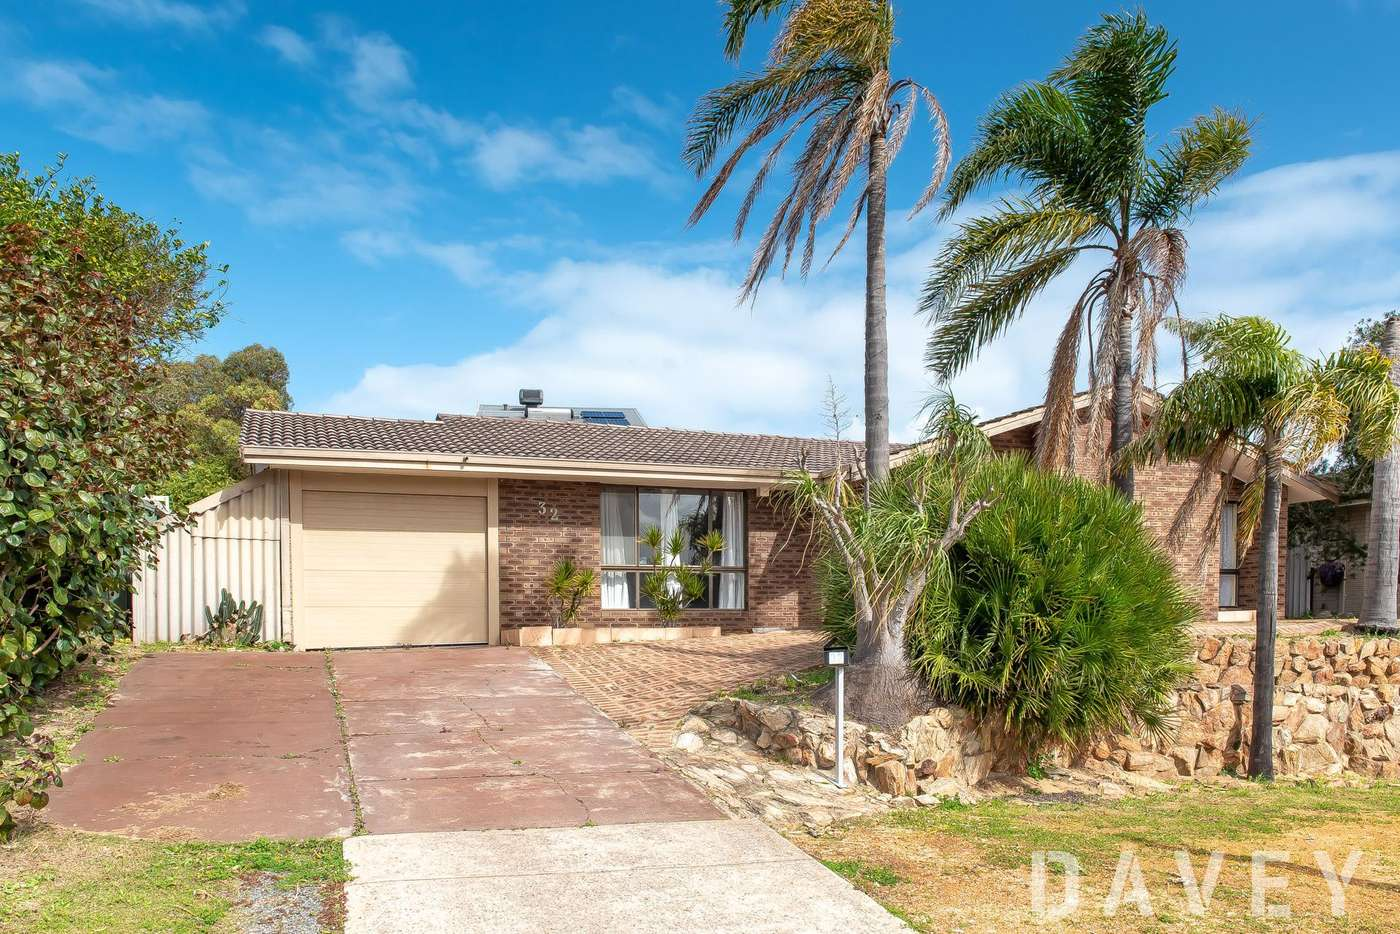 Main view of Homely house listing, 32 Bannister Road, Padbury WA 6025